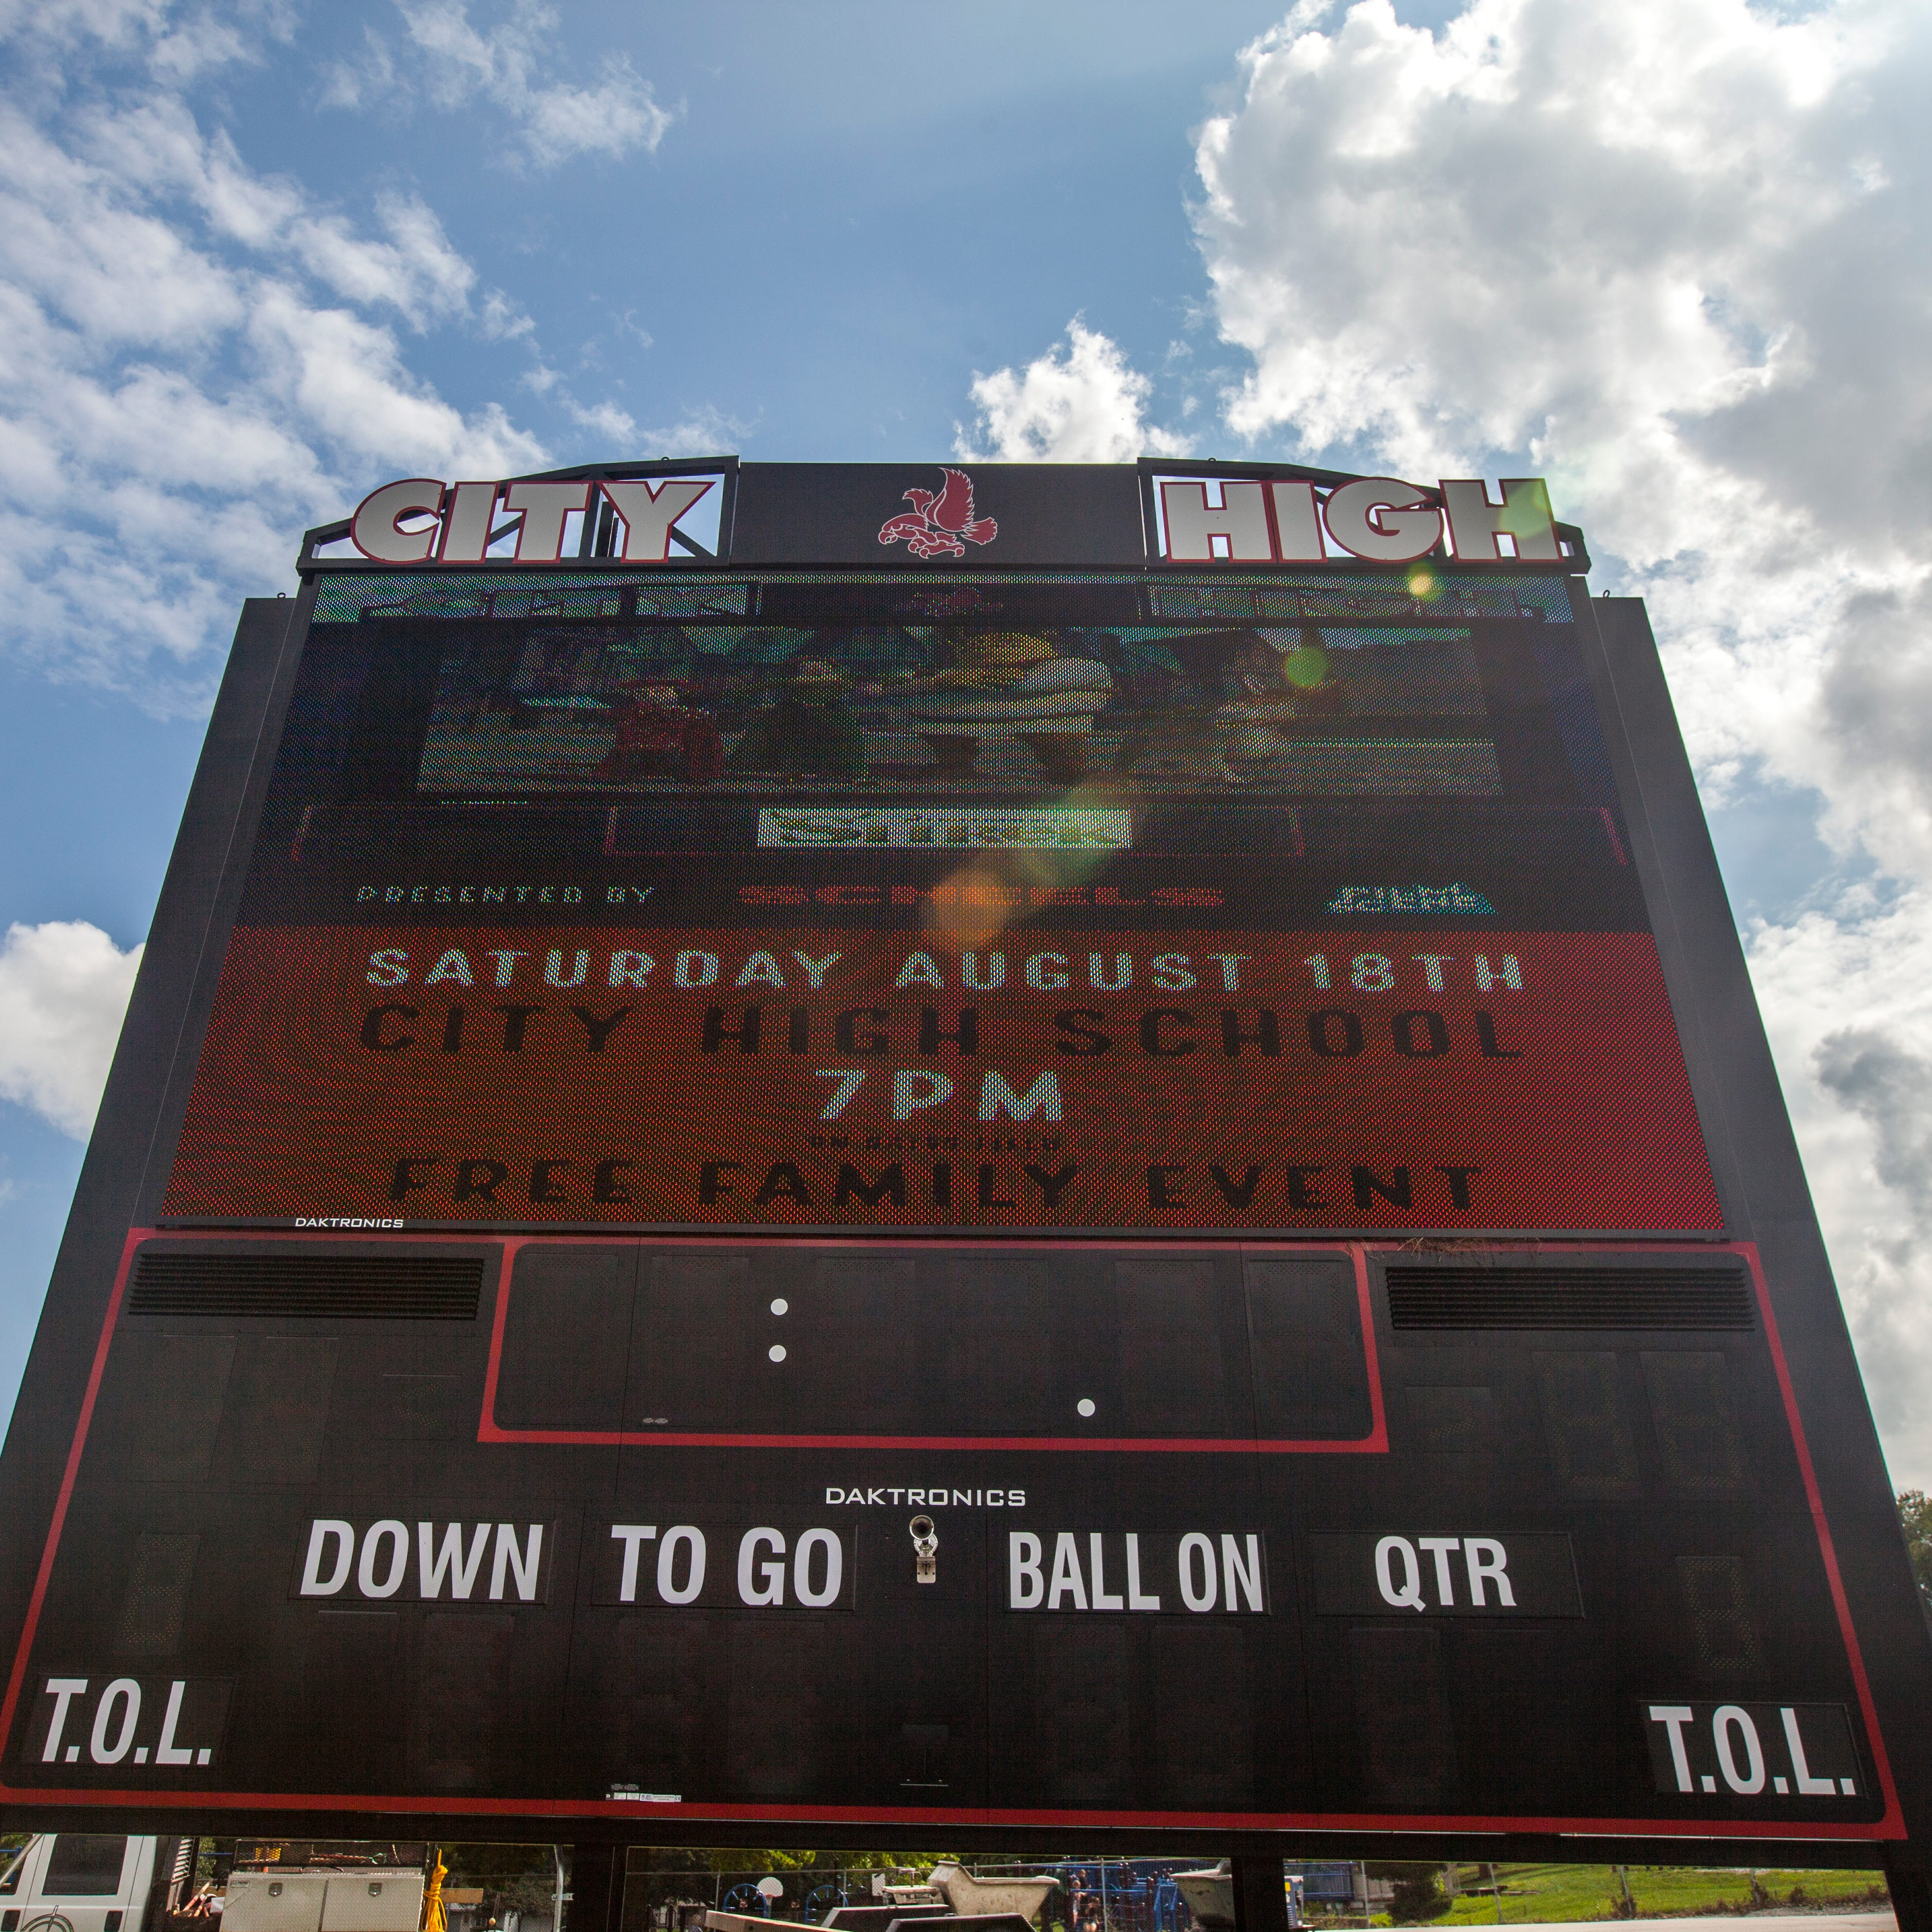 City High unveils new scoreboard with 'Shrek' showing